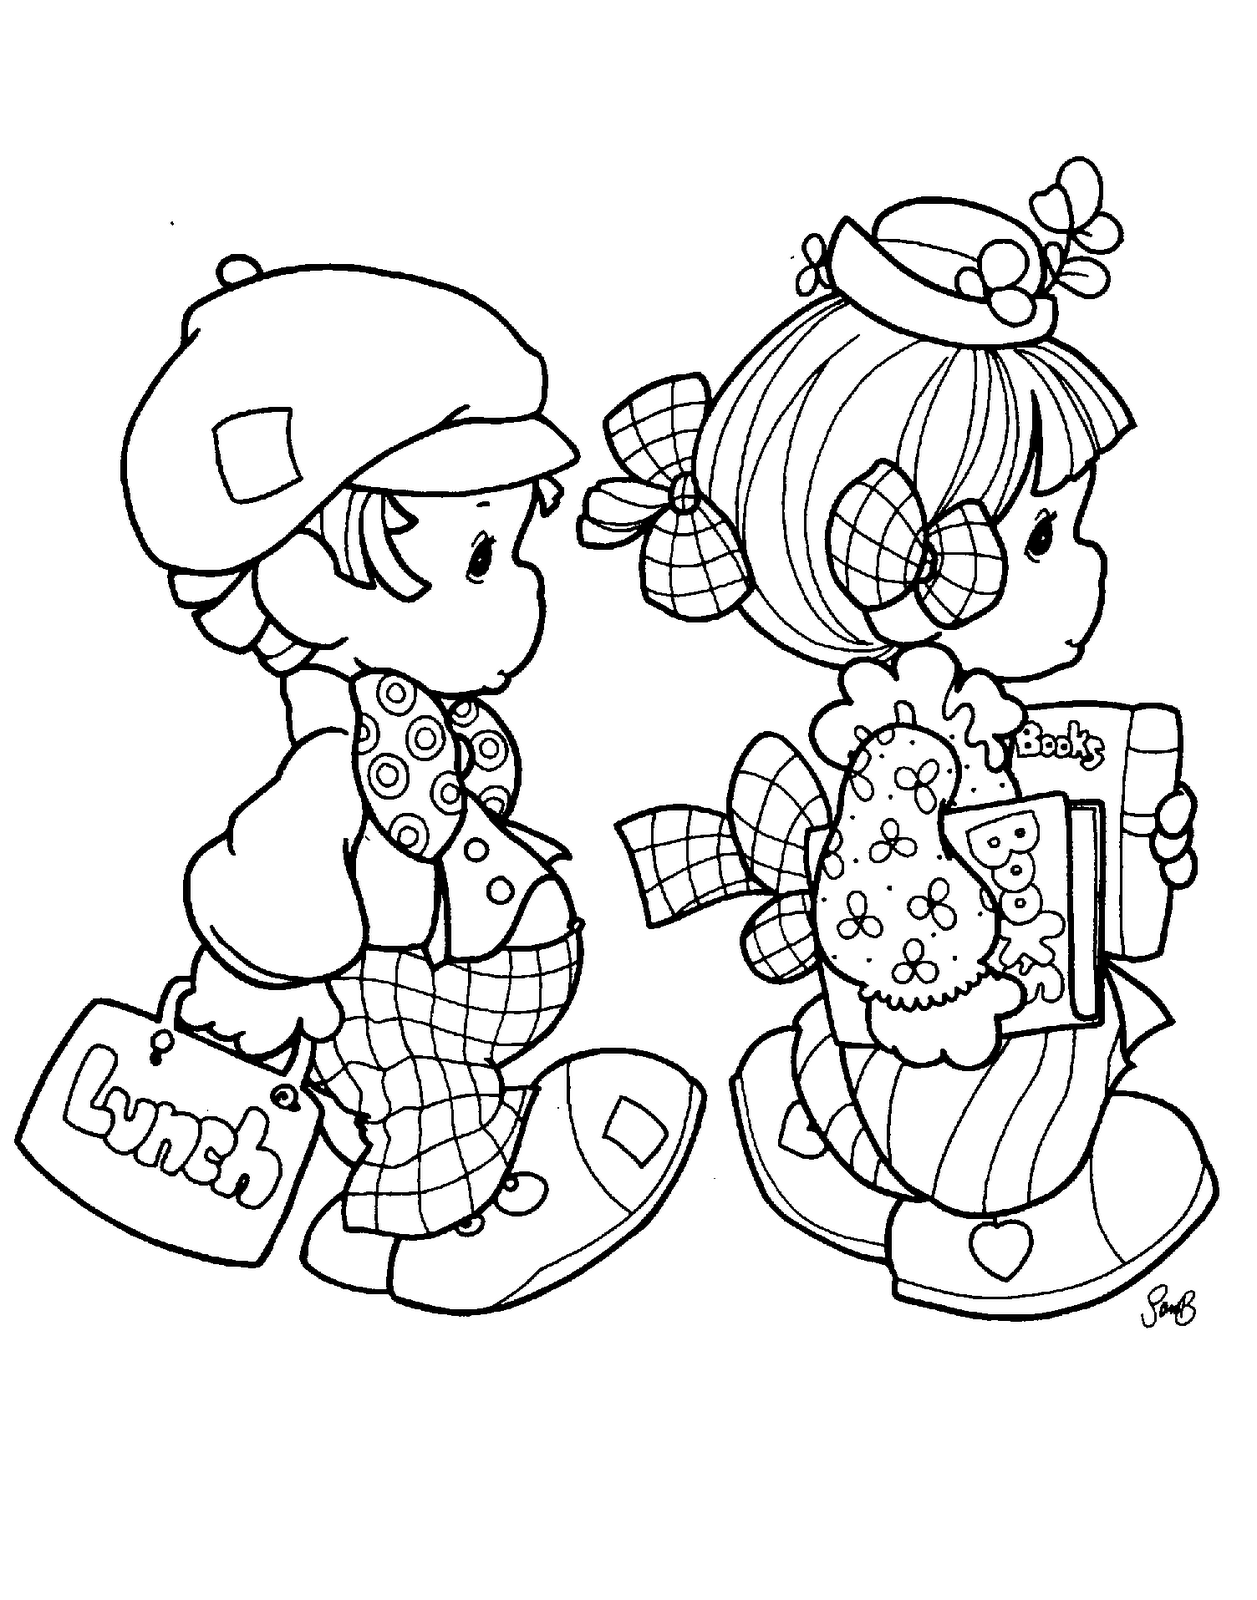 Christmas Love Coloring Pages With Precious Moments For Embroidery